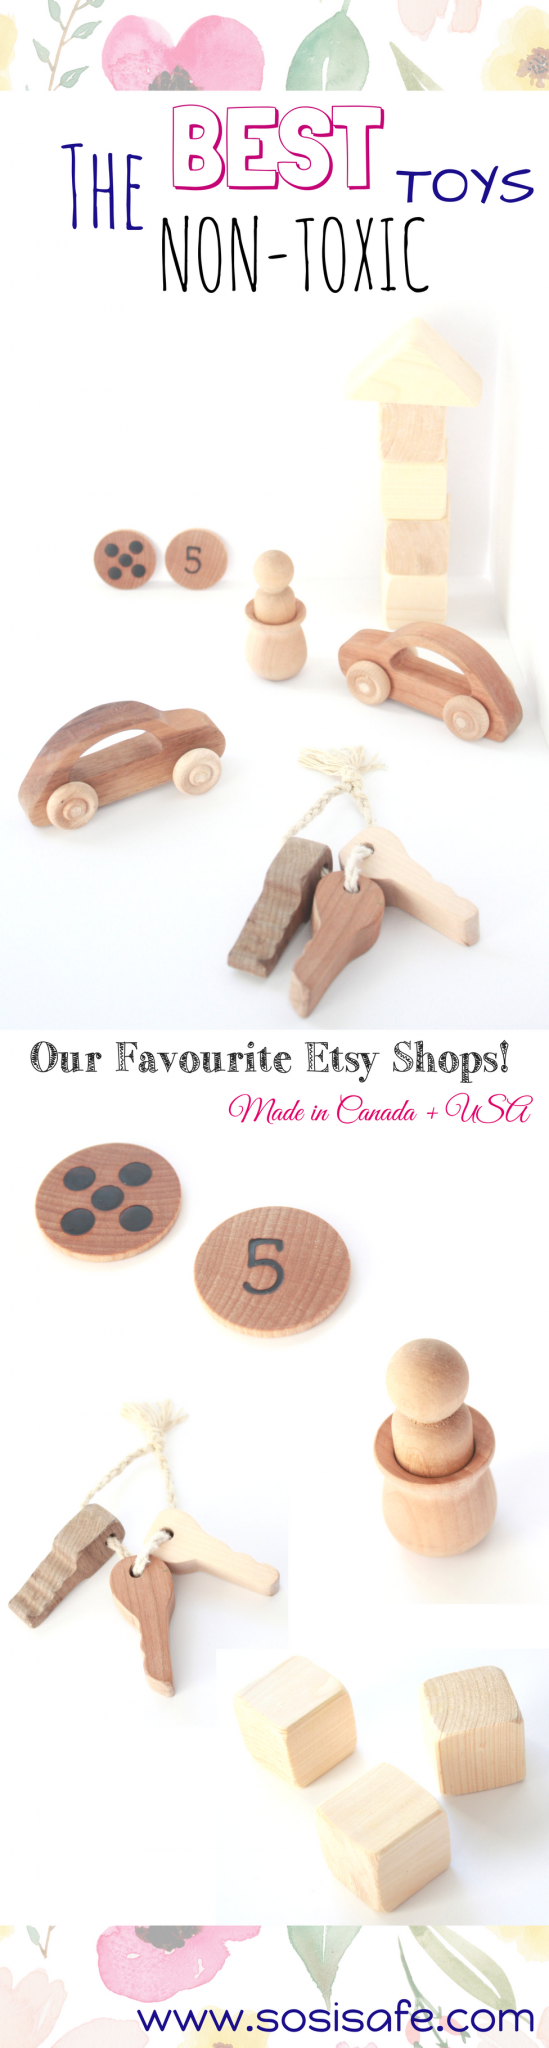 The Best Non Toxic Toys Etsy Shop Review by Sosi Safe